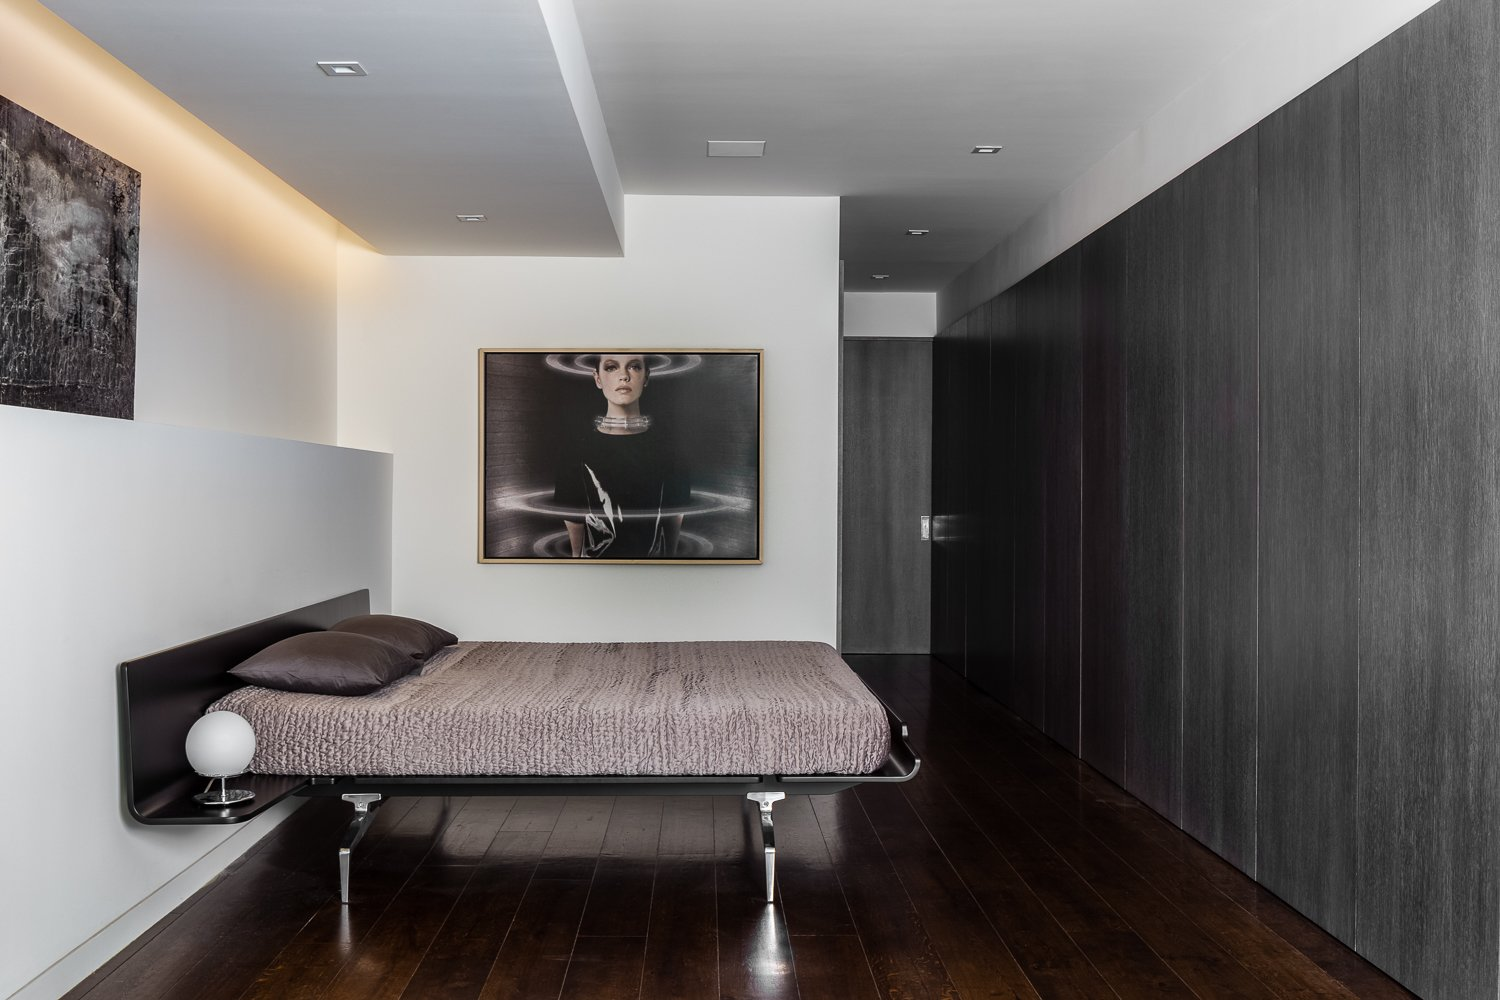 Master Suite + Hall - bed: Alias, Rift-cut white oak, full-height, honeycomb panels and doors: hand wire brushed, stained, sealed, sanded, glazed, sanded and top-coated